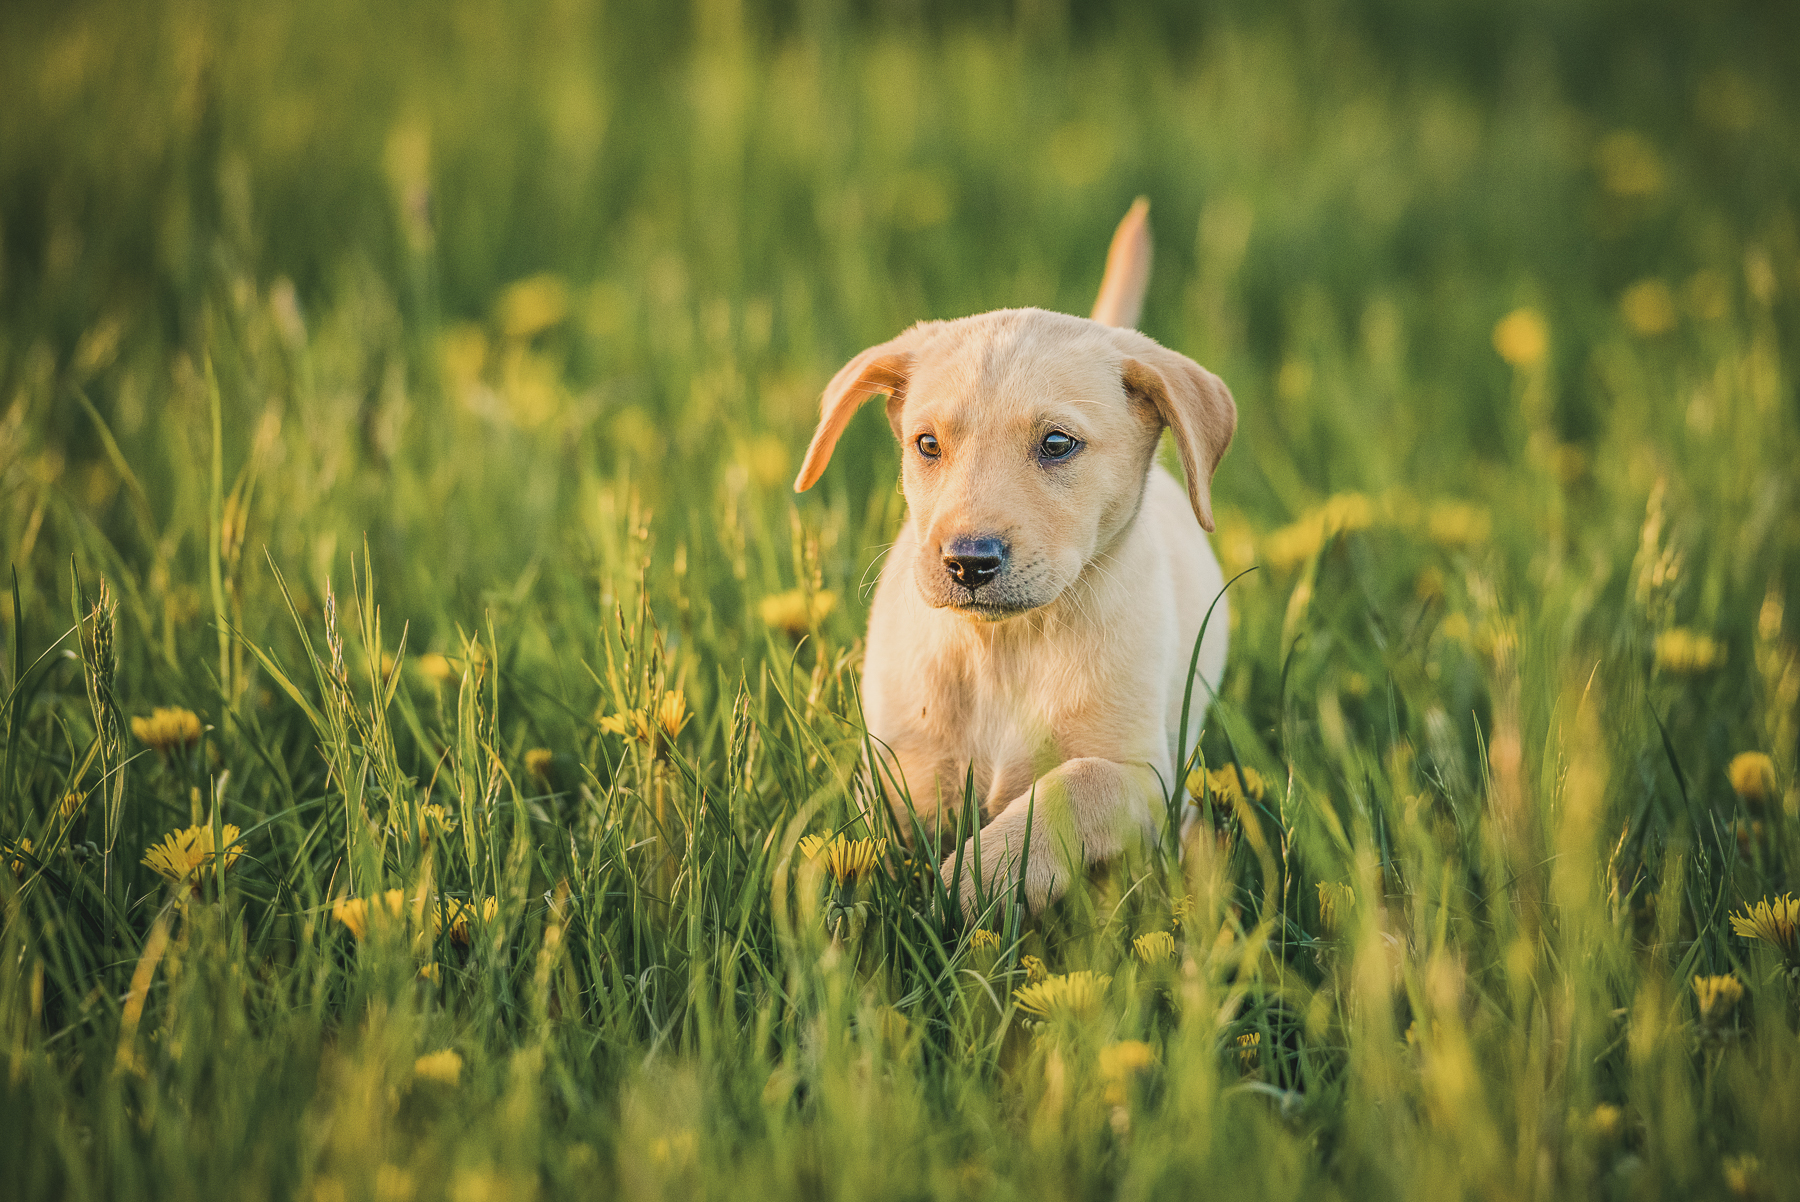 Yellow labrador puppy in a field